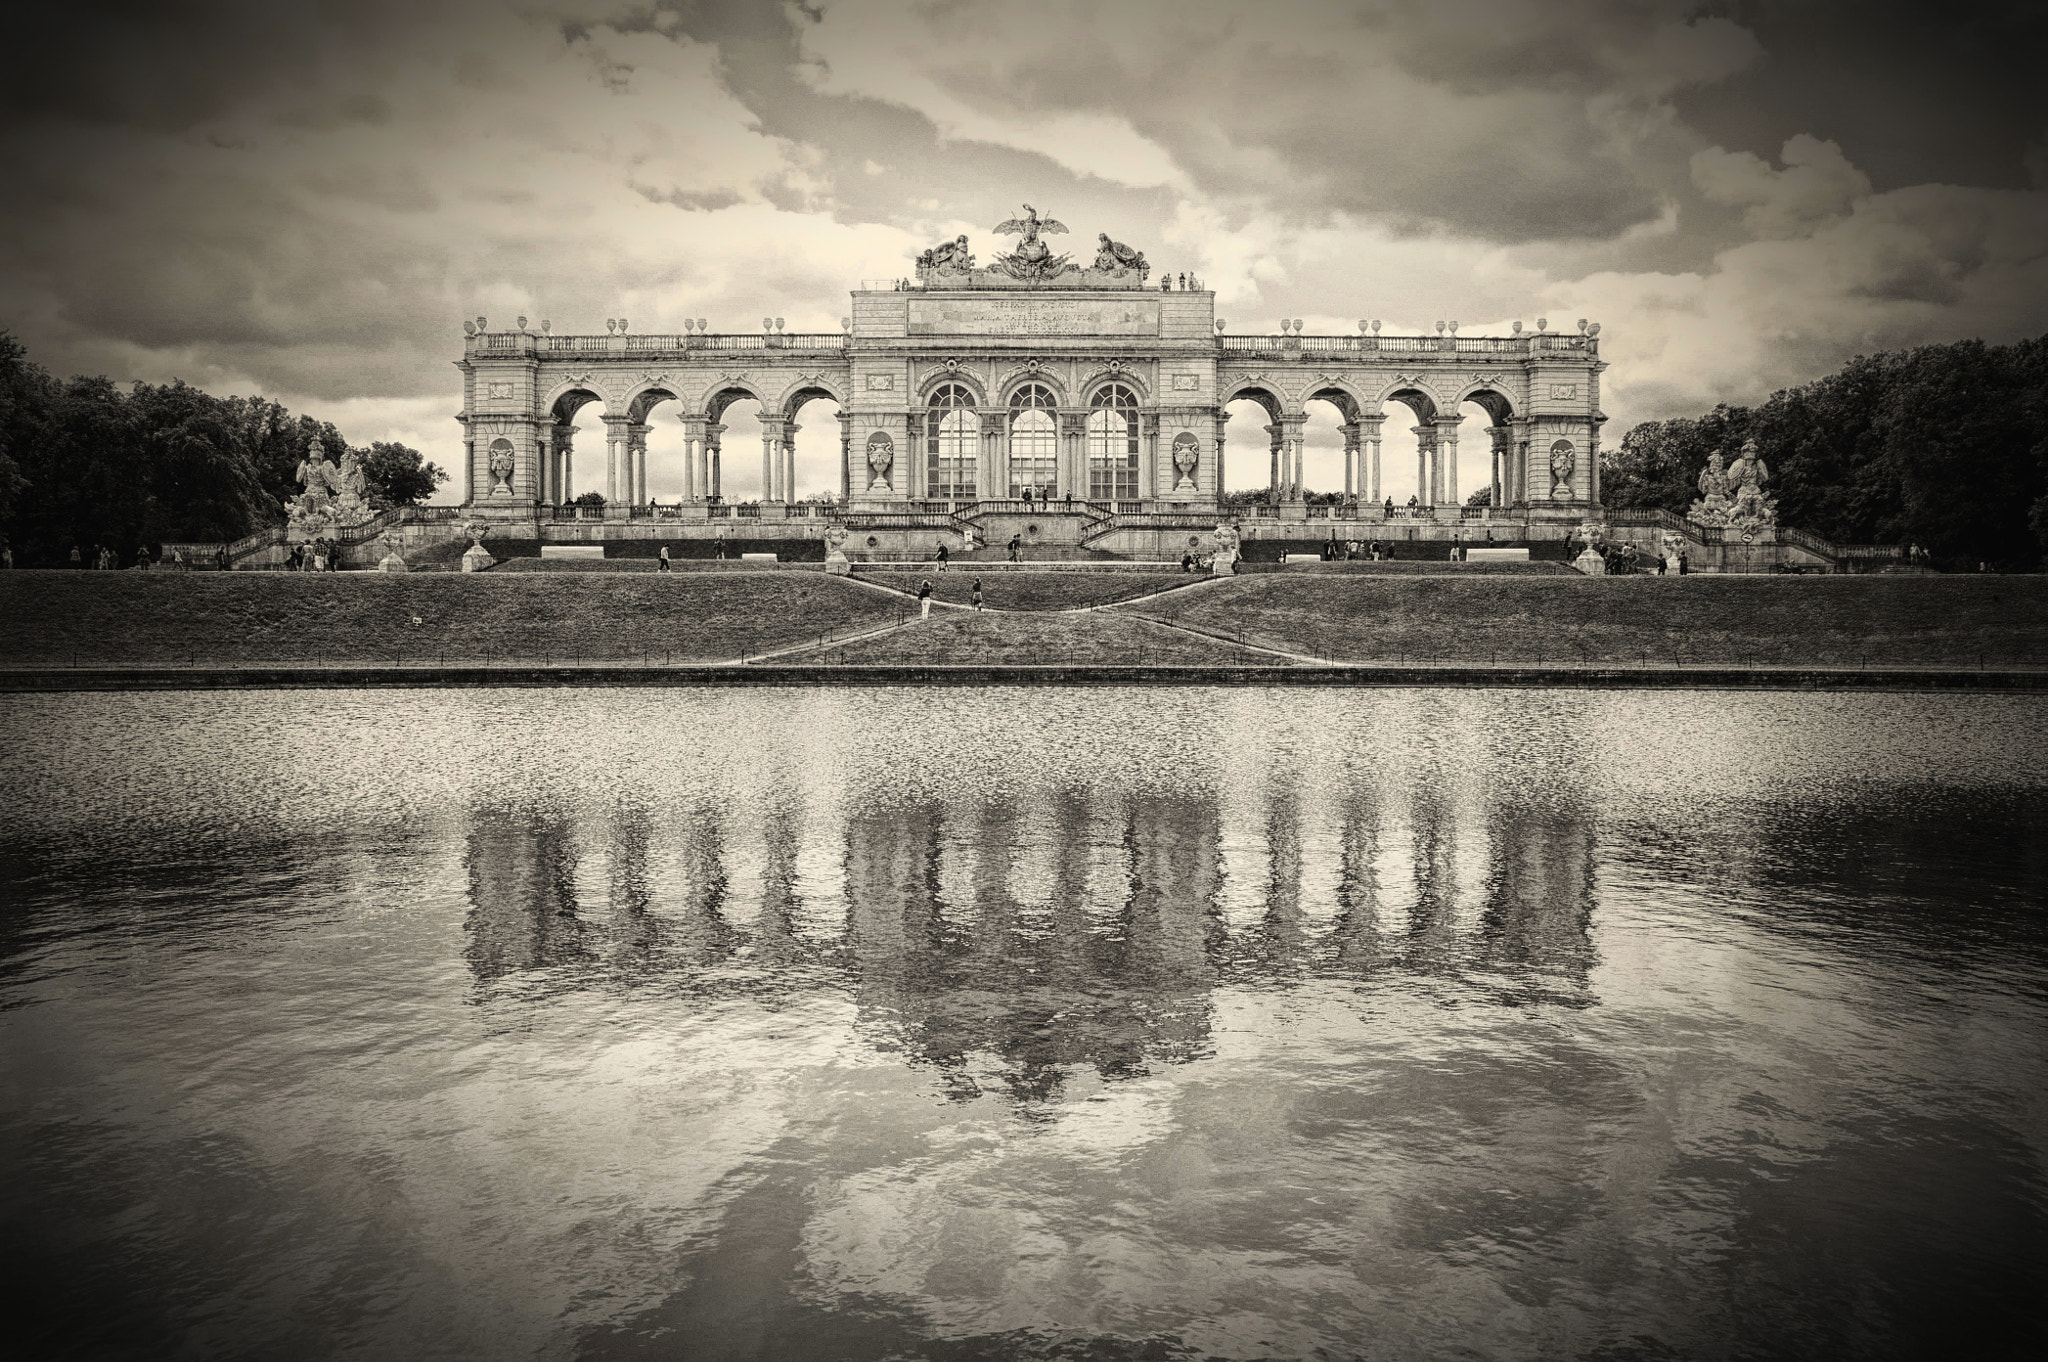 Photograph Gloriette Vienna, Austria. by Sabrina Marchi on 500px